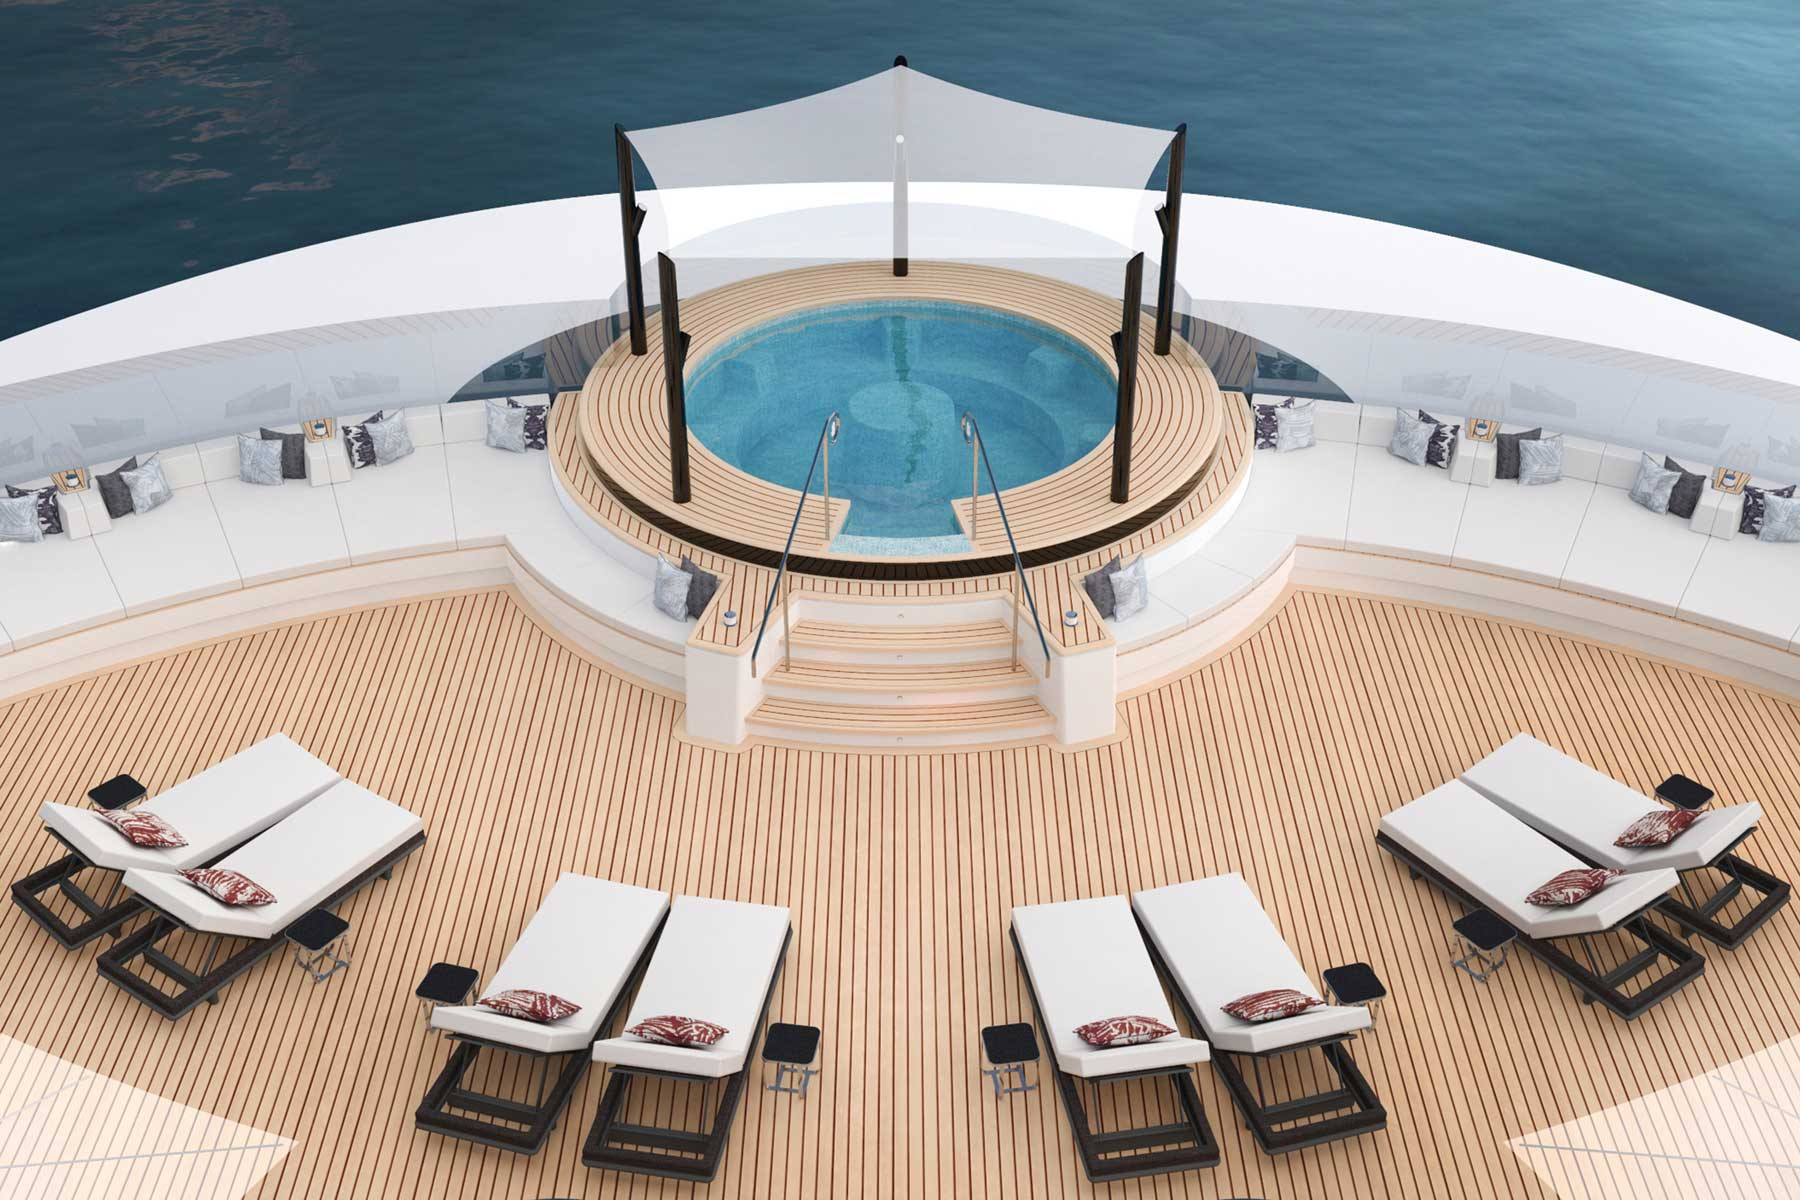 Rendering of the spa pool deck of a luxury yacht that will be operated by Ritz-Carlton